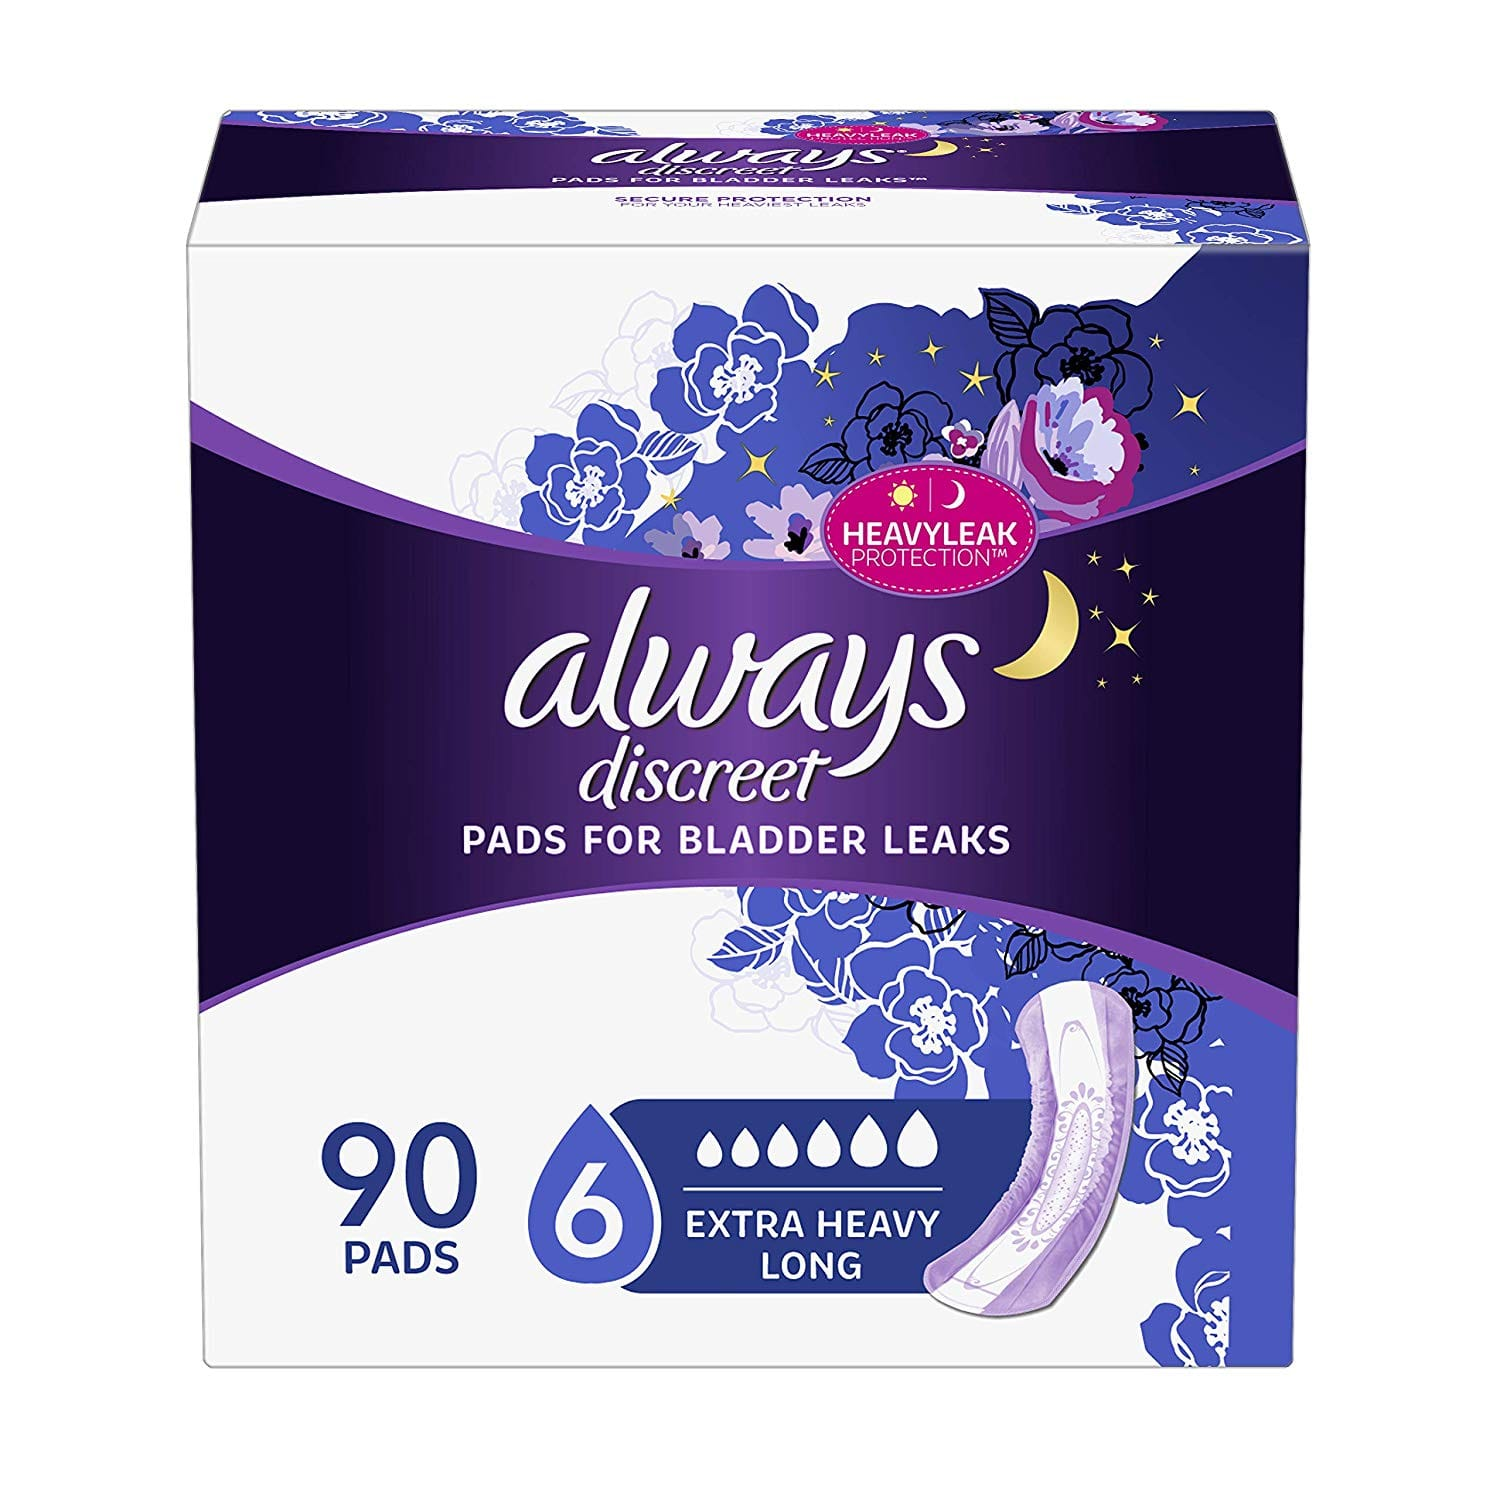 Amazon: Save $3 on Always Discreet Incontinence Pads + Save 5% w/ S&S + Free Shipping w/ Prime